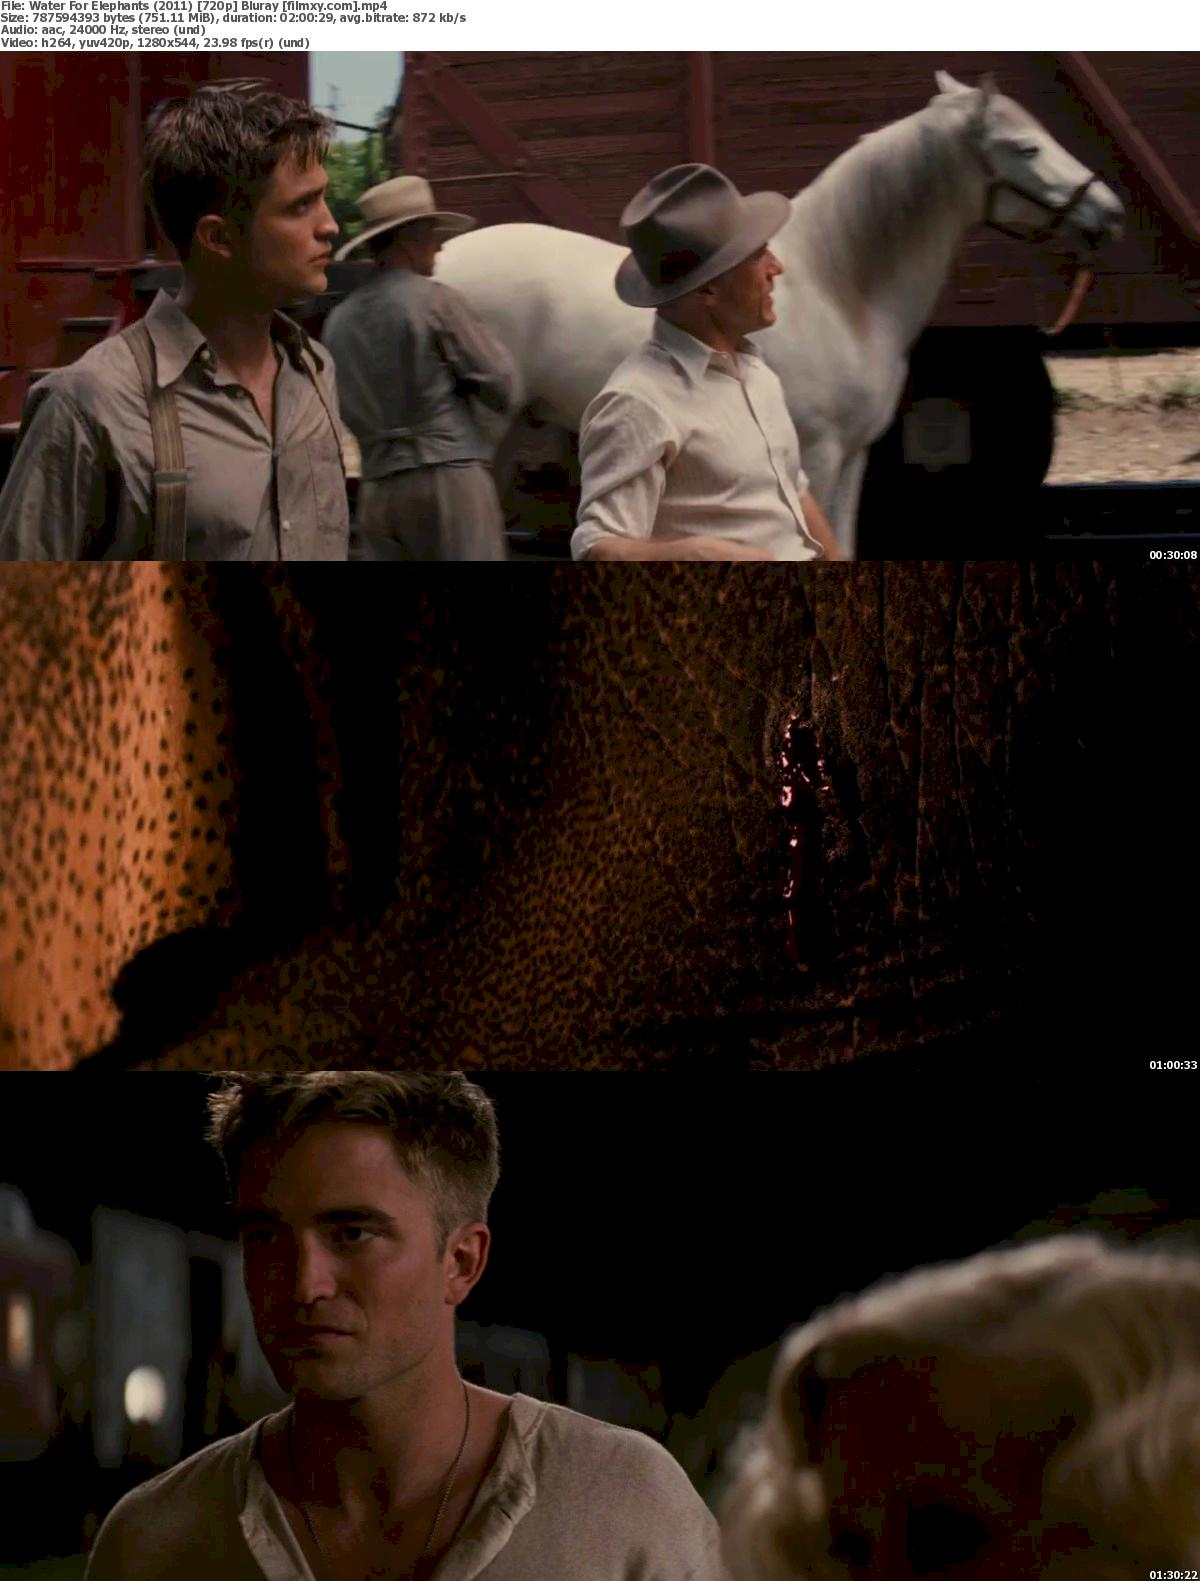 Water For Elephants (2011) 720p Bluray Free Download 720p Screenshot